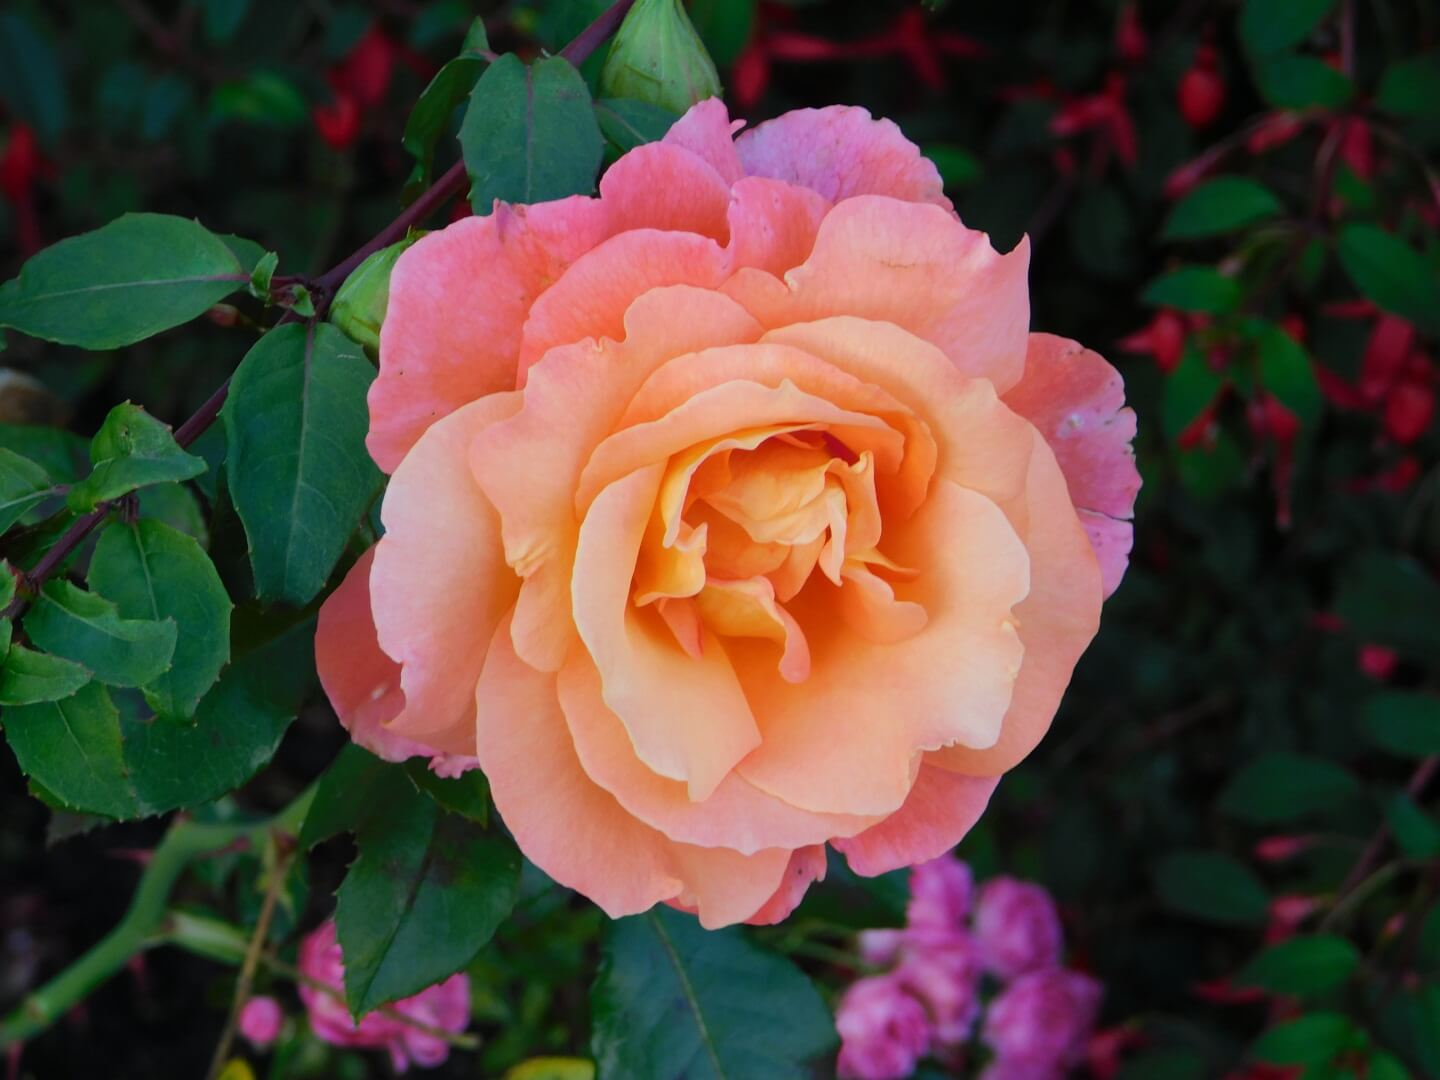 Photo of a light pink rose